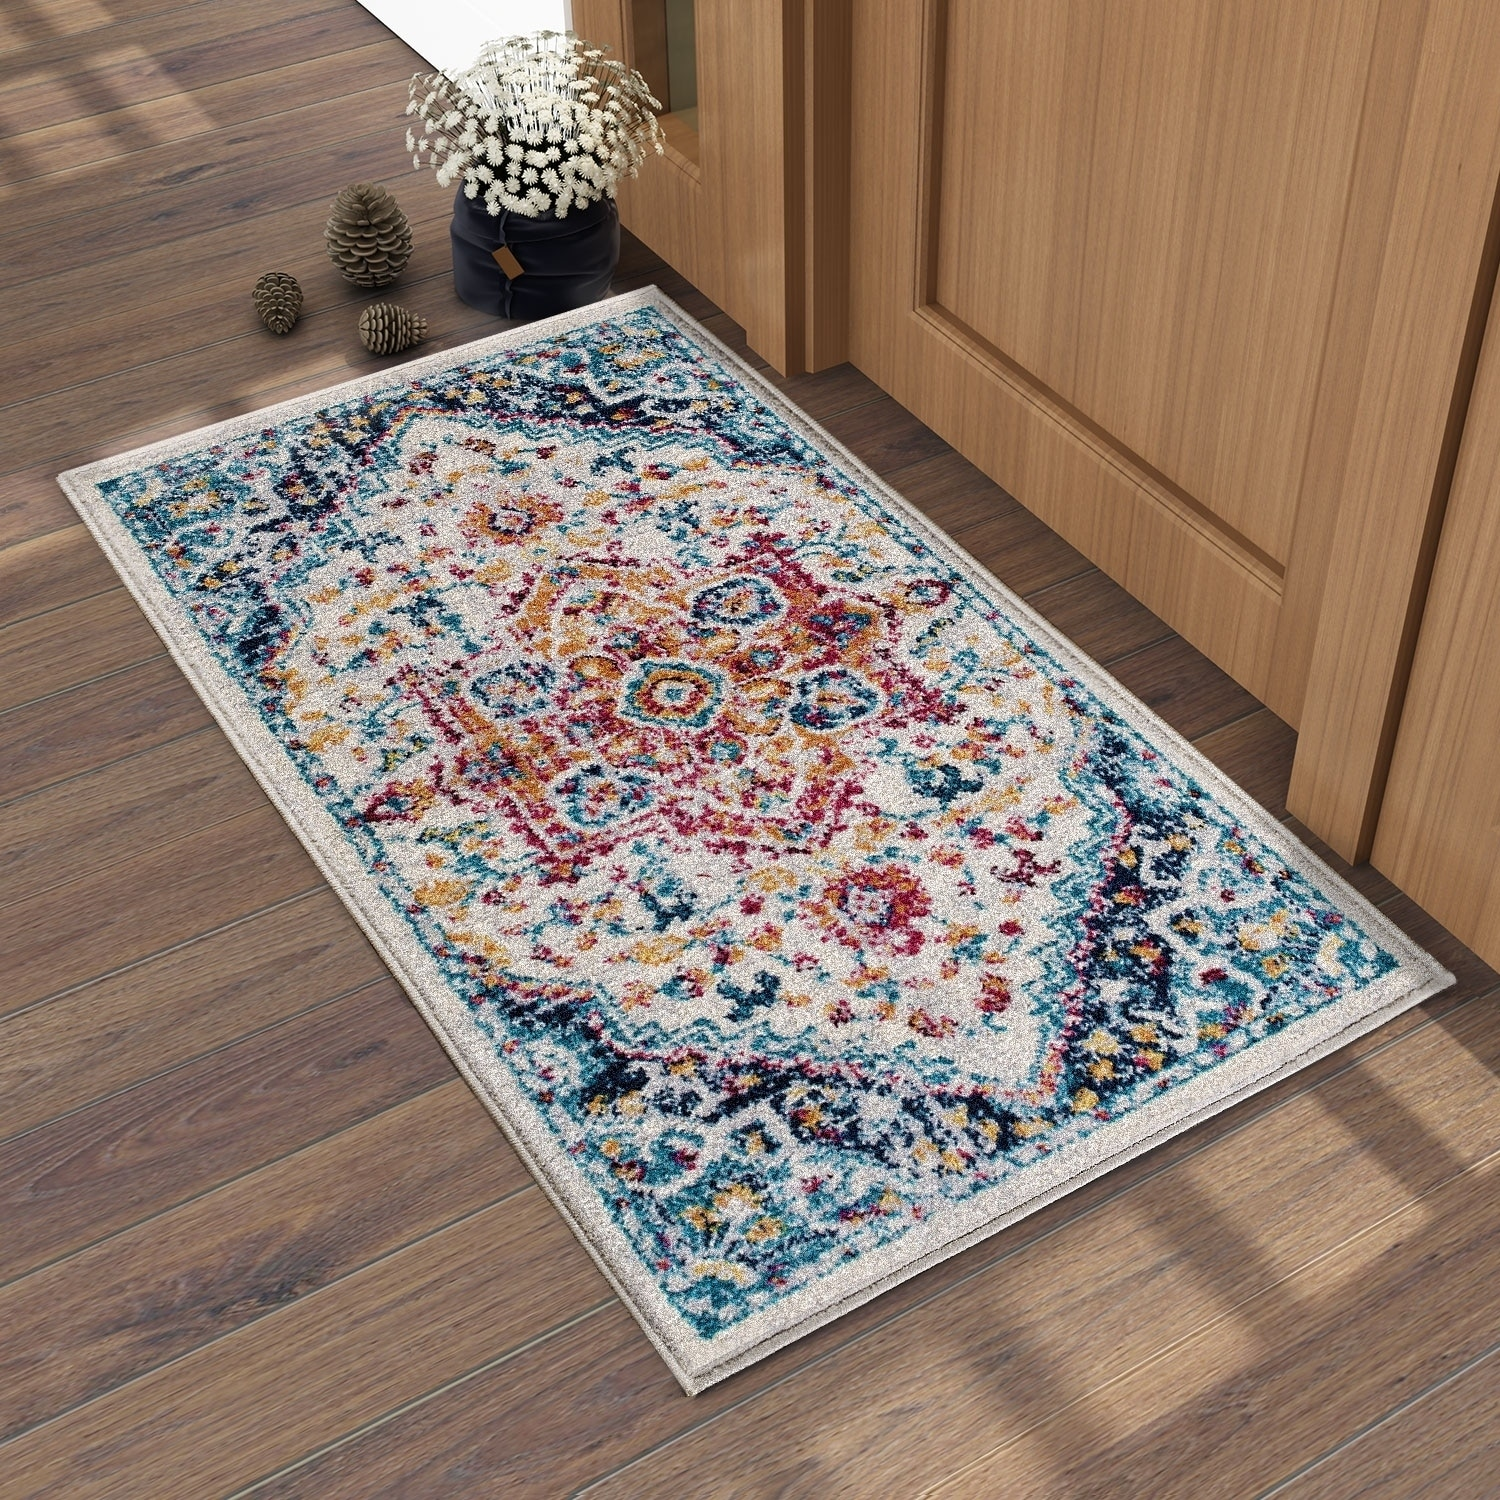 Buy French Country Kitchen Rugs Mats Online At Overstock